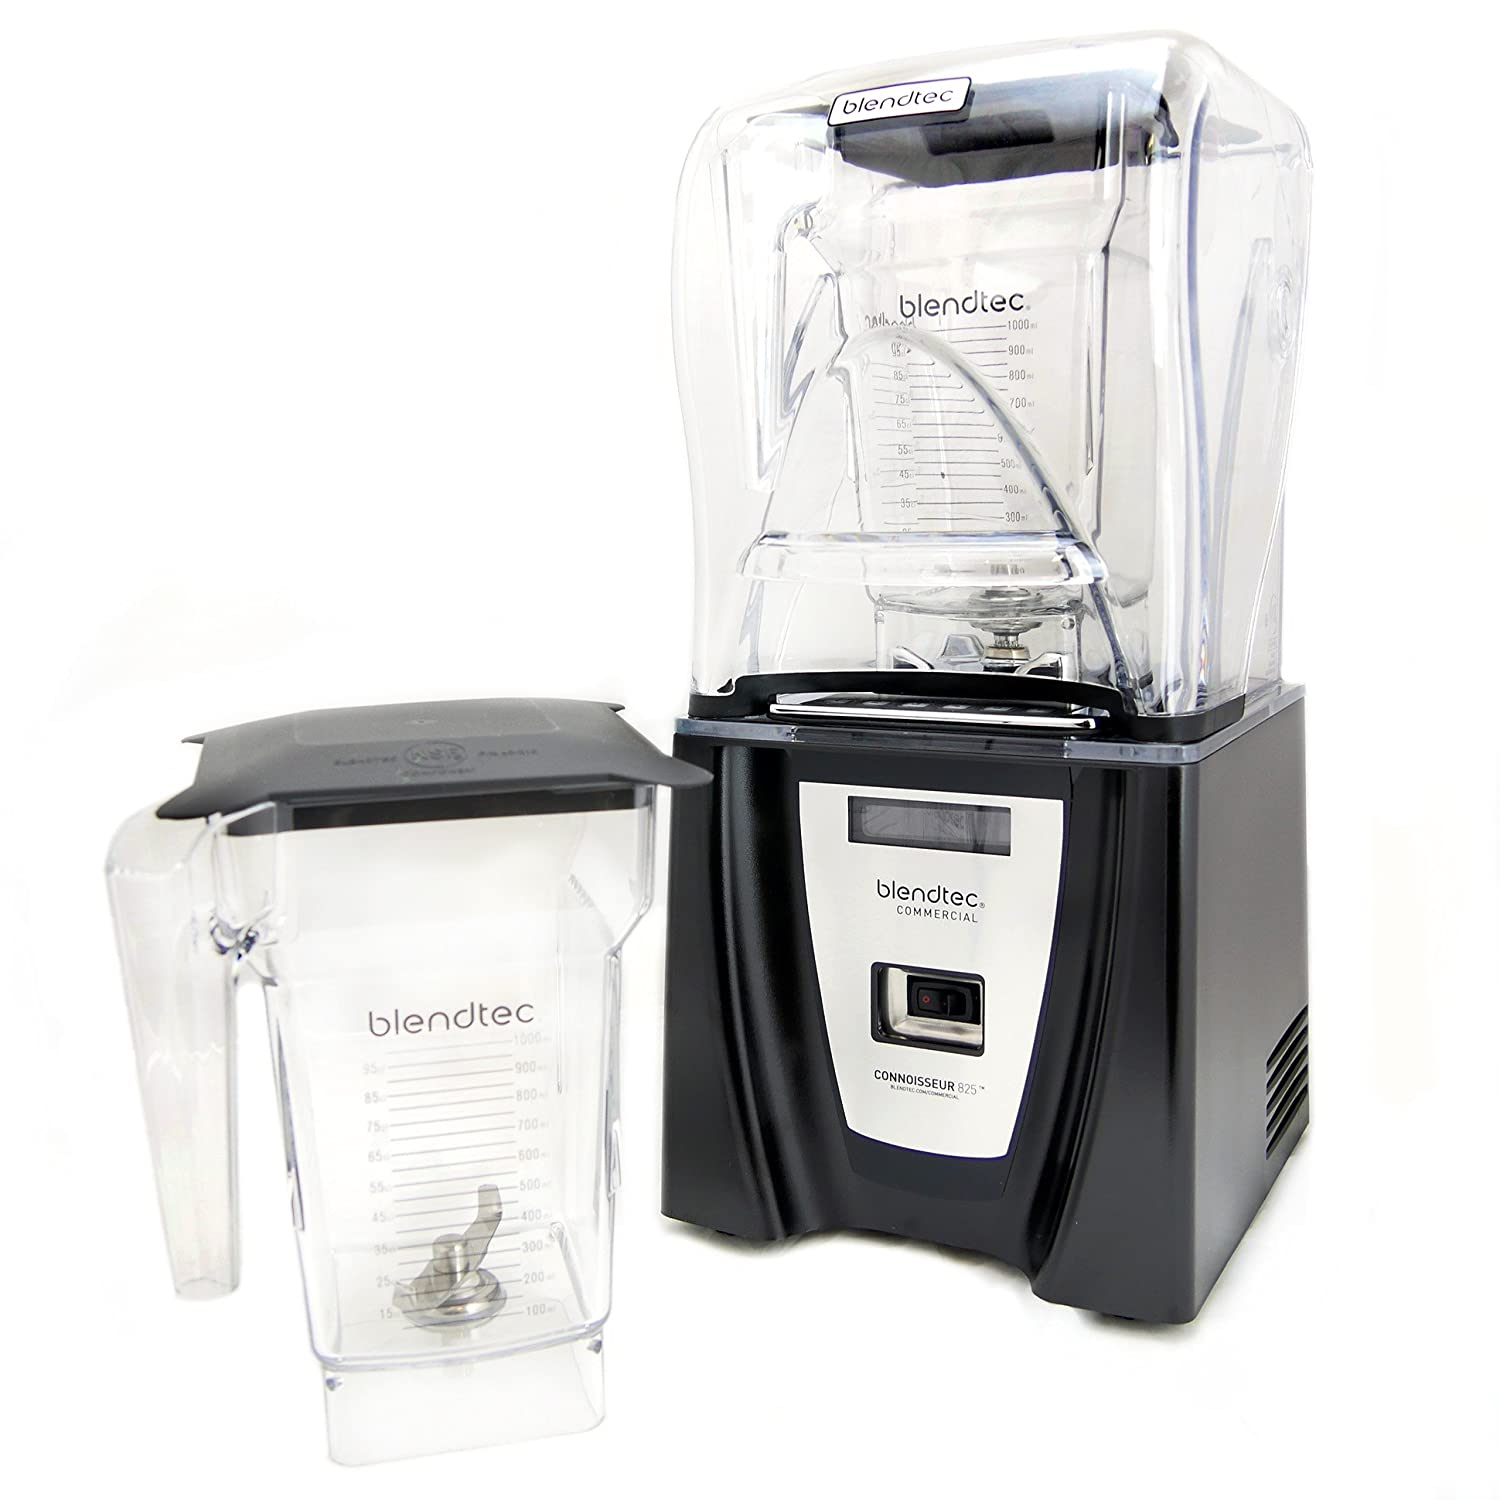 Blendtec Commercial CONNOISSEUR 825 Blender - With Two FourSide Jars & Soft Lids